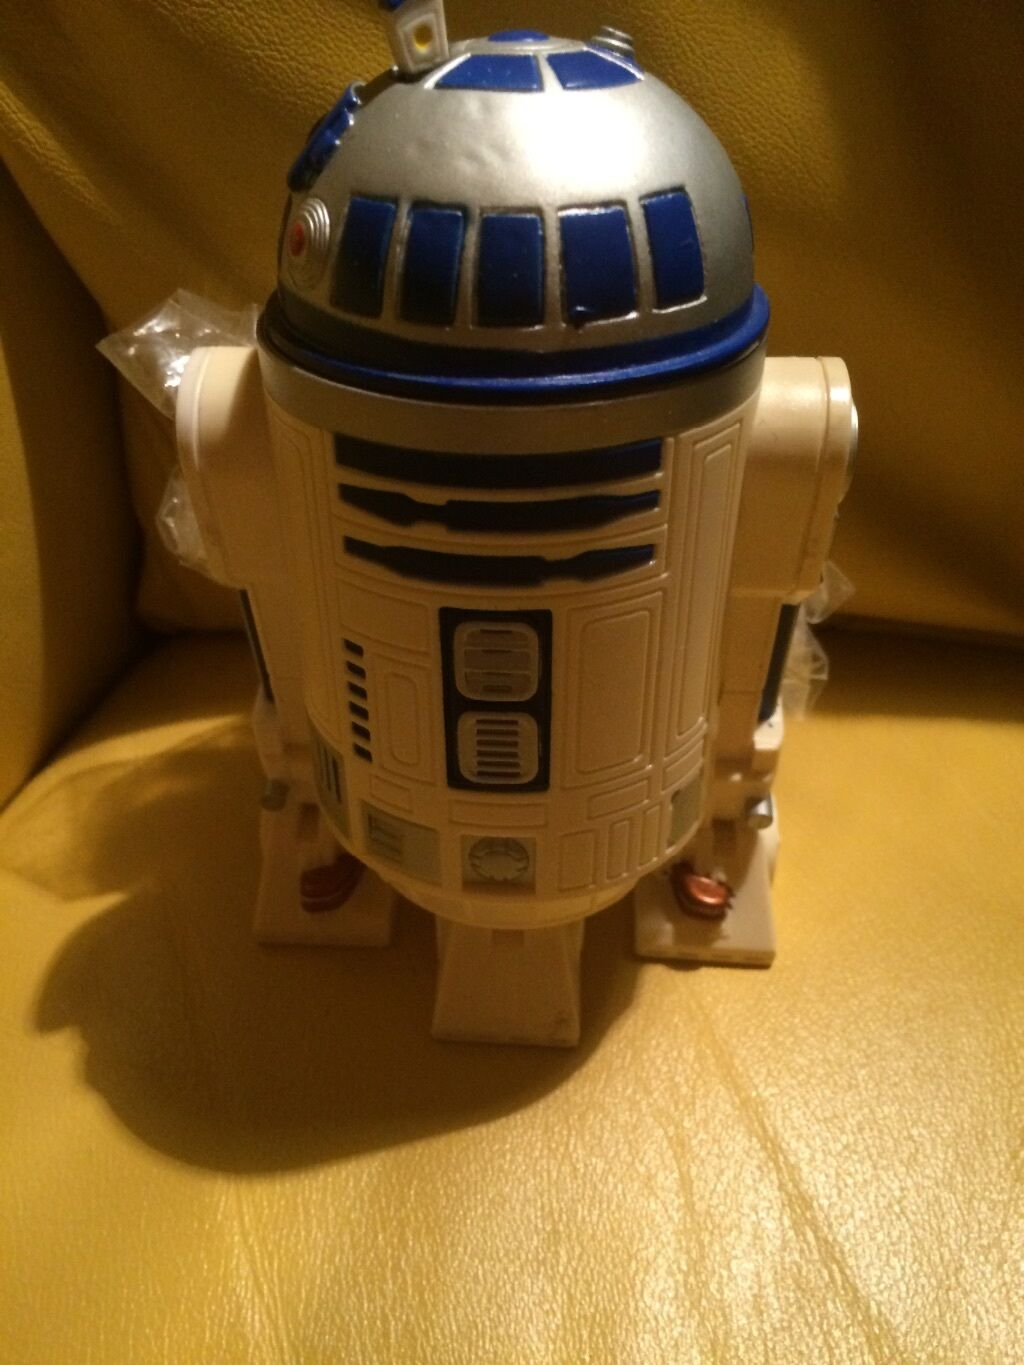 RARE  1997 Star Wars Classics Collectors Series R2-D2 Droid Figure by Applause